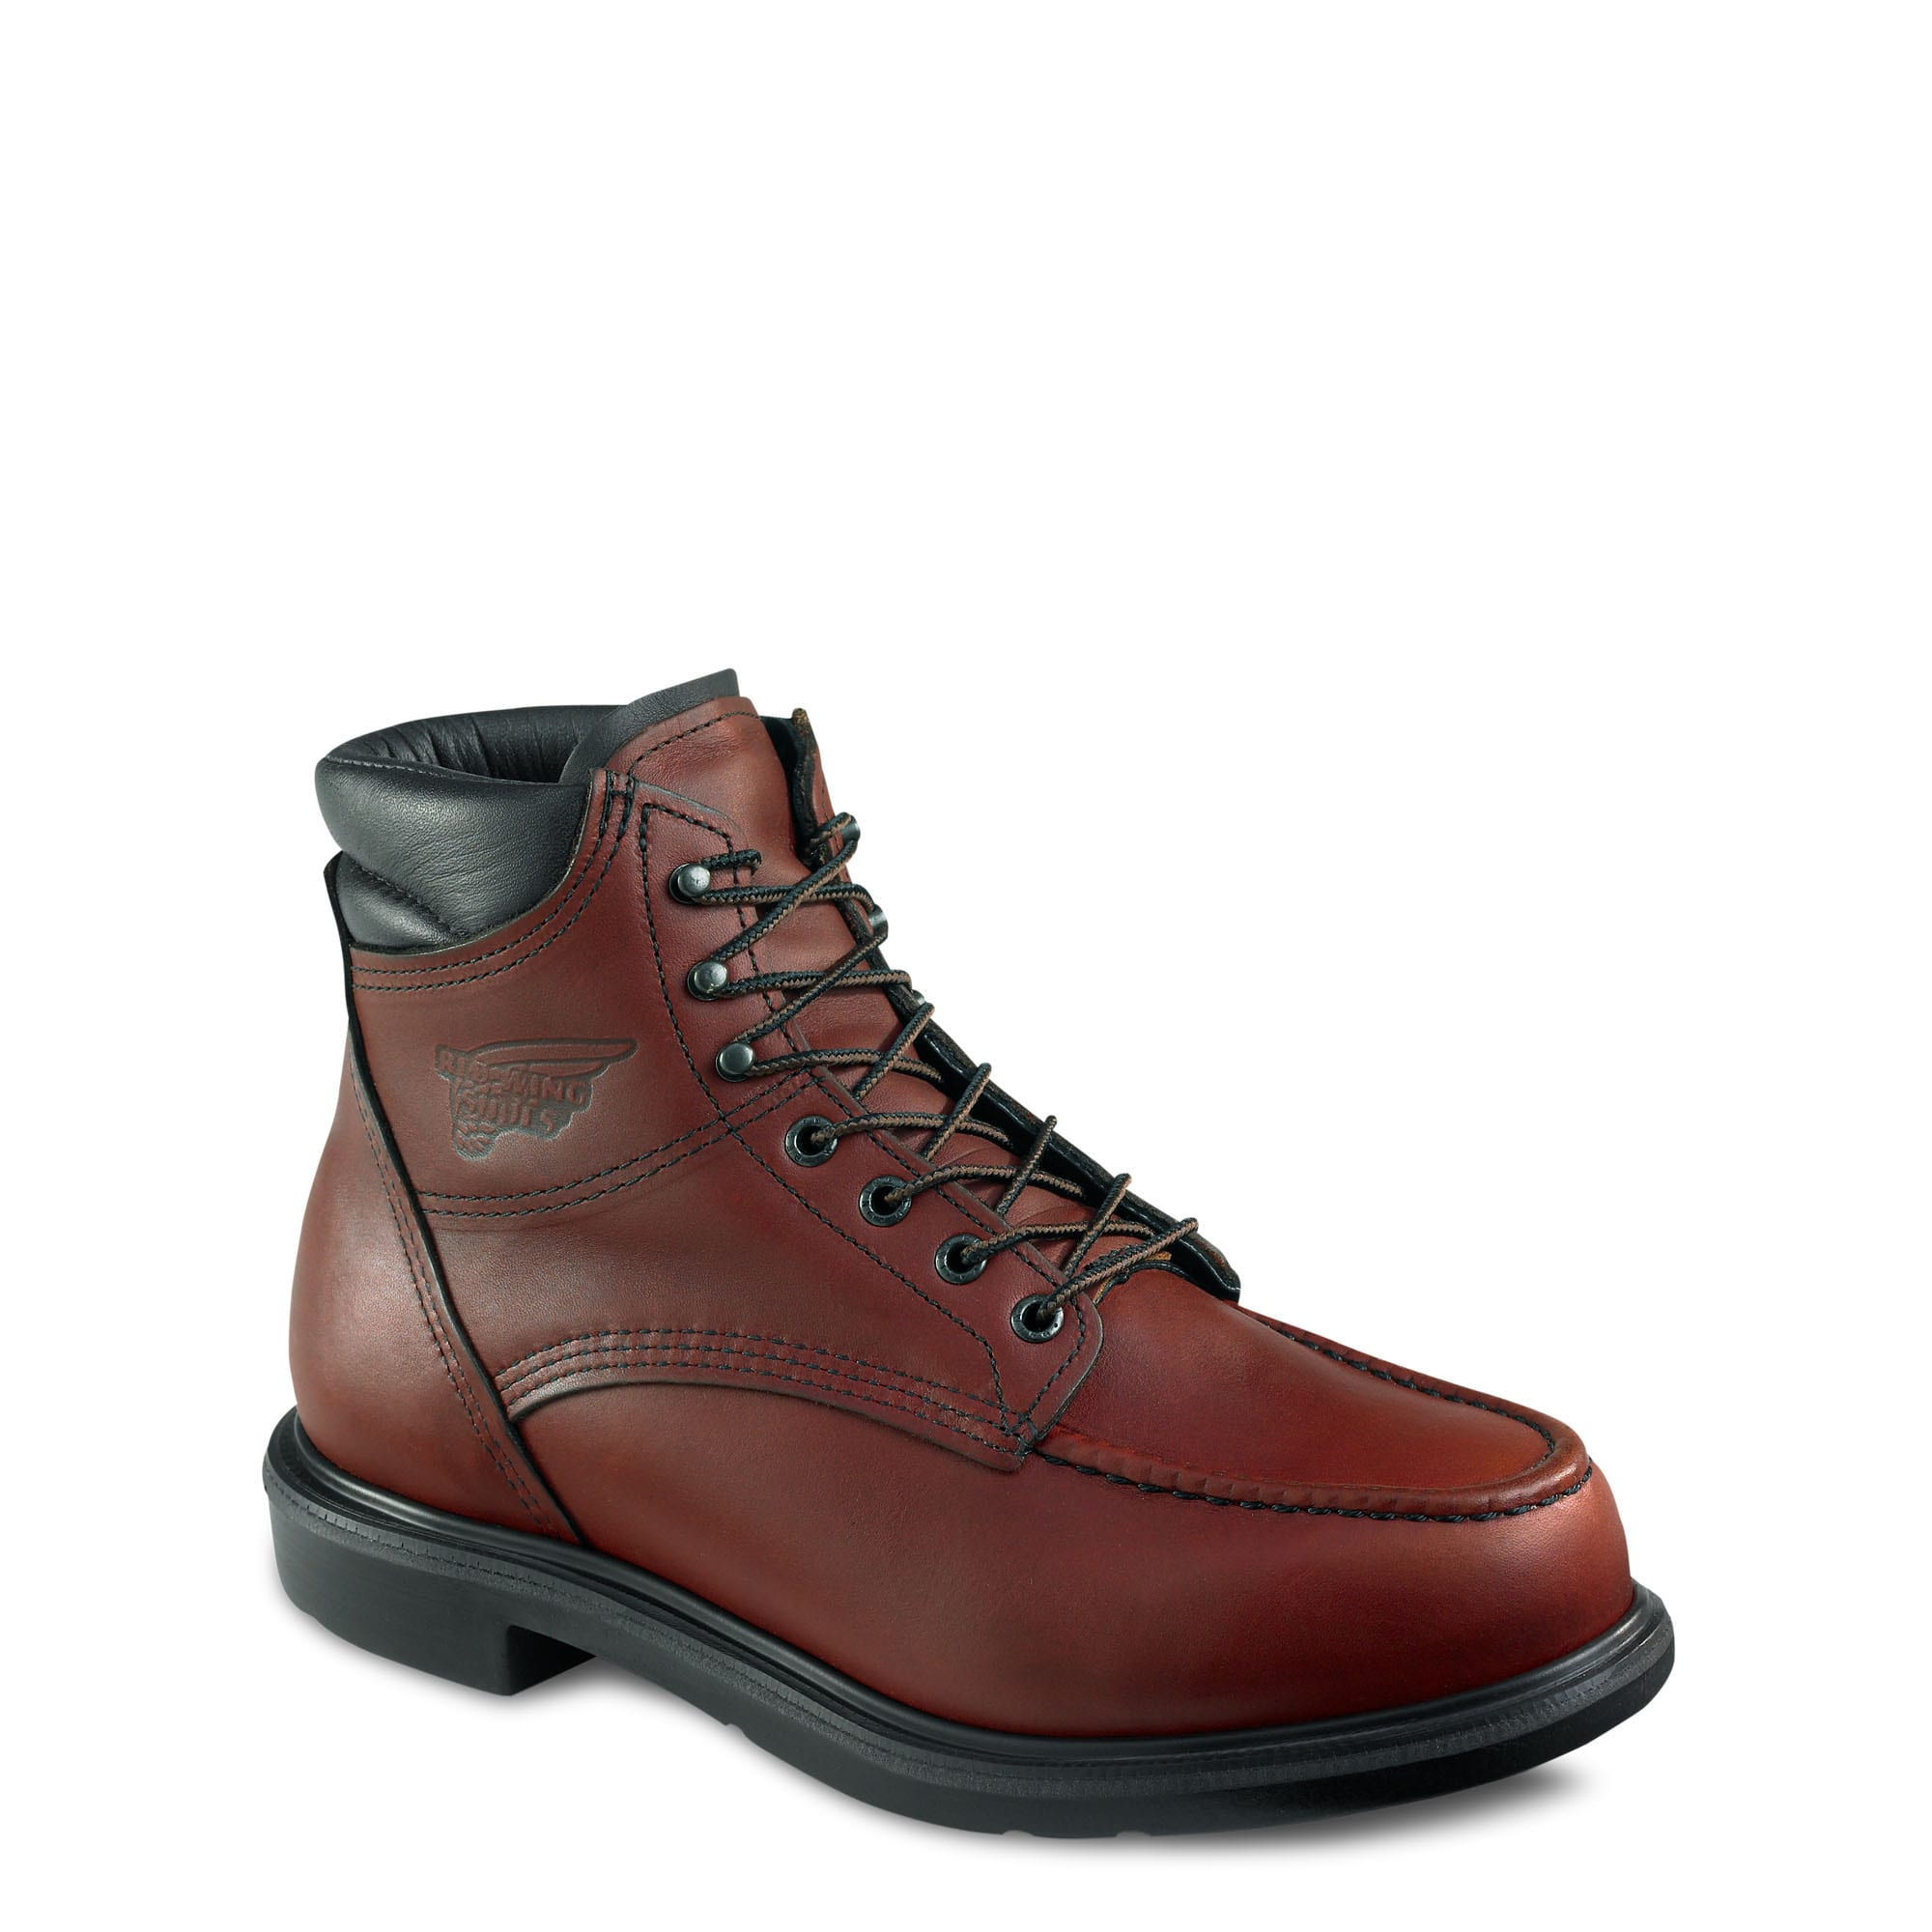 f31982c7e0f Red Wing Shoes Archives - Boots Boots Boots